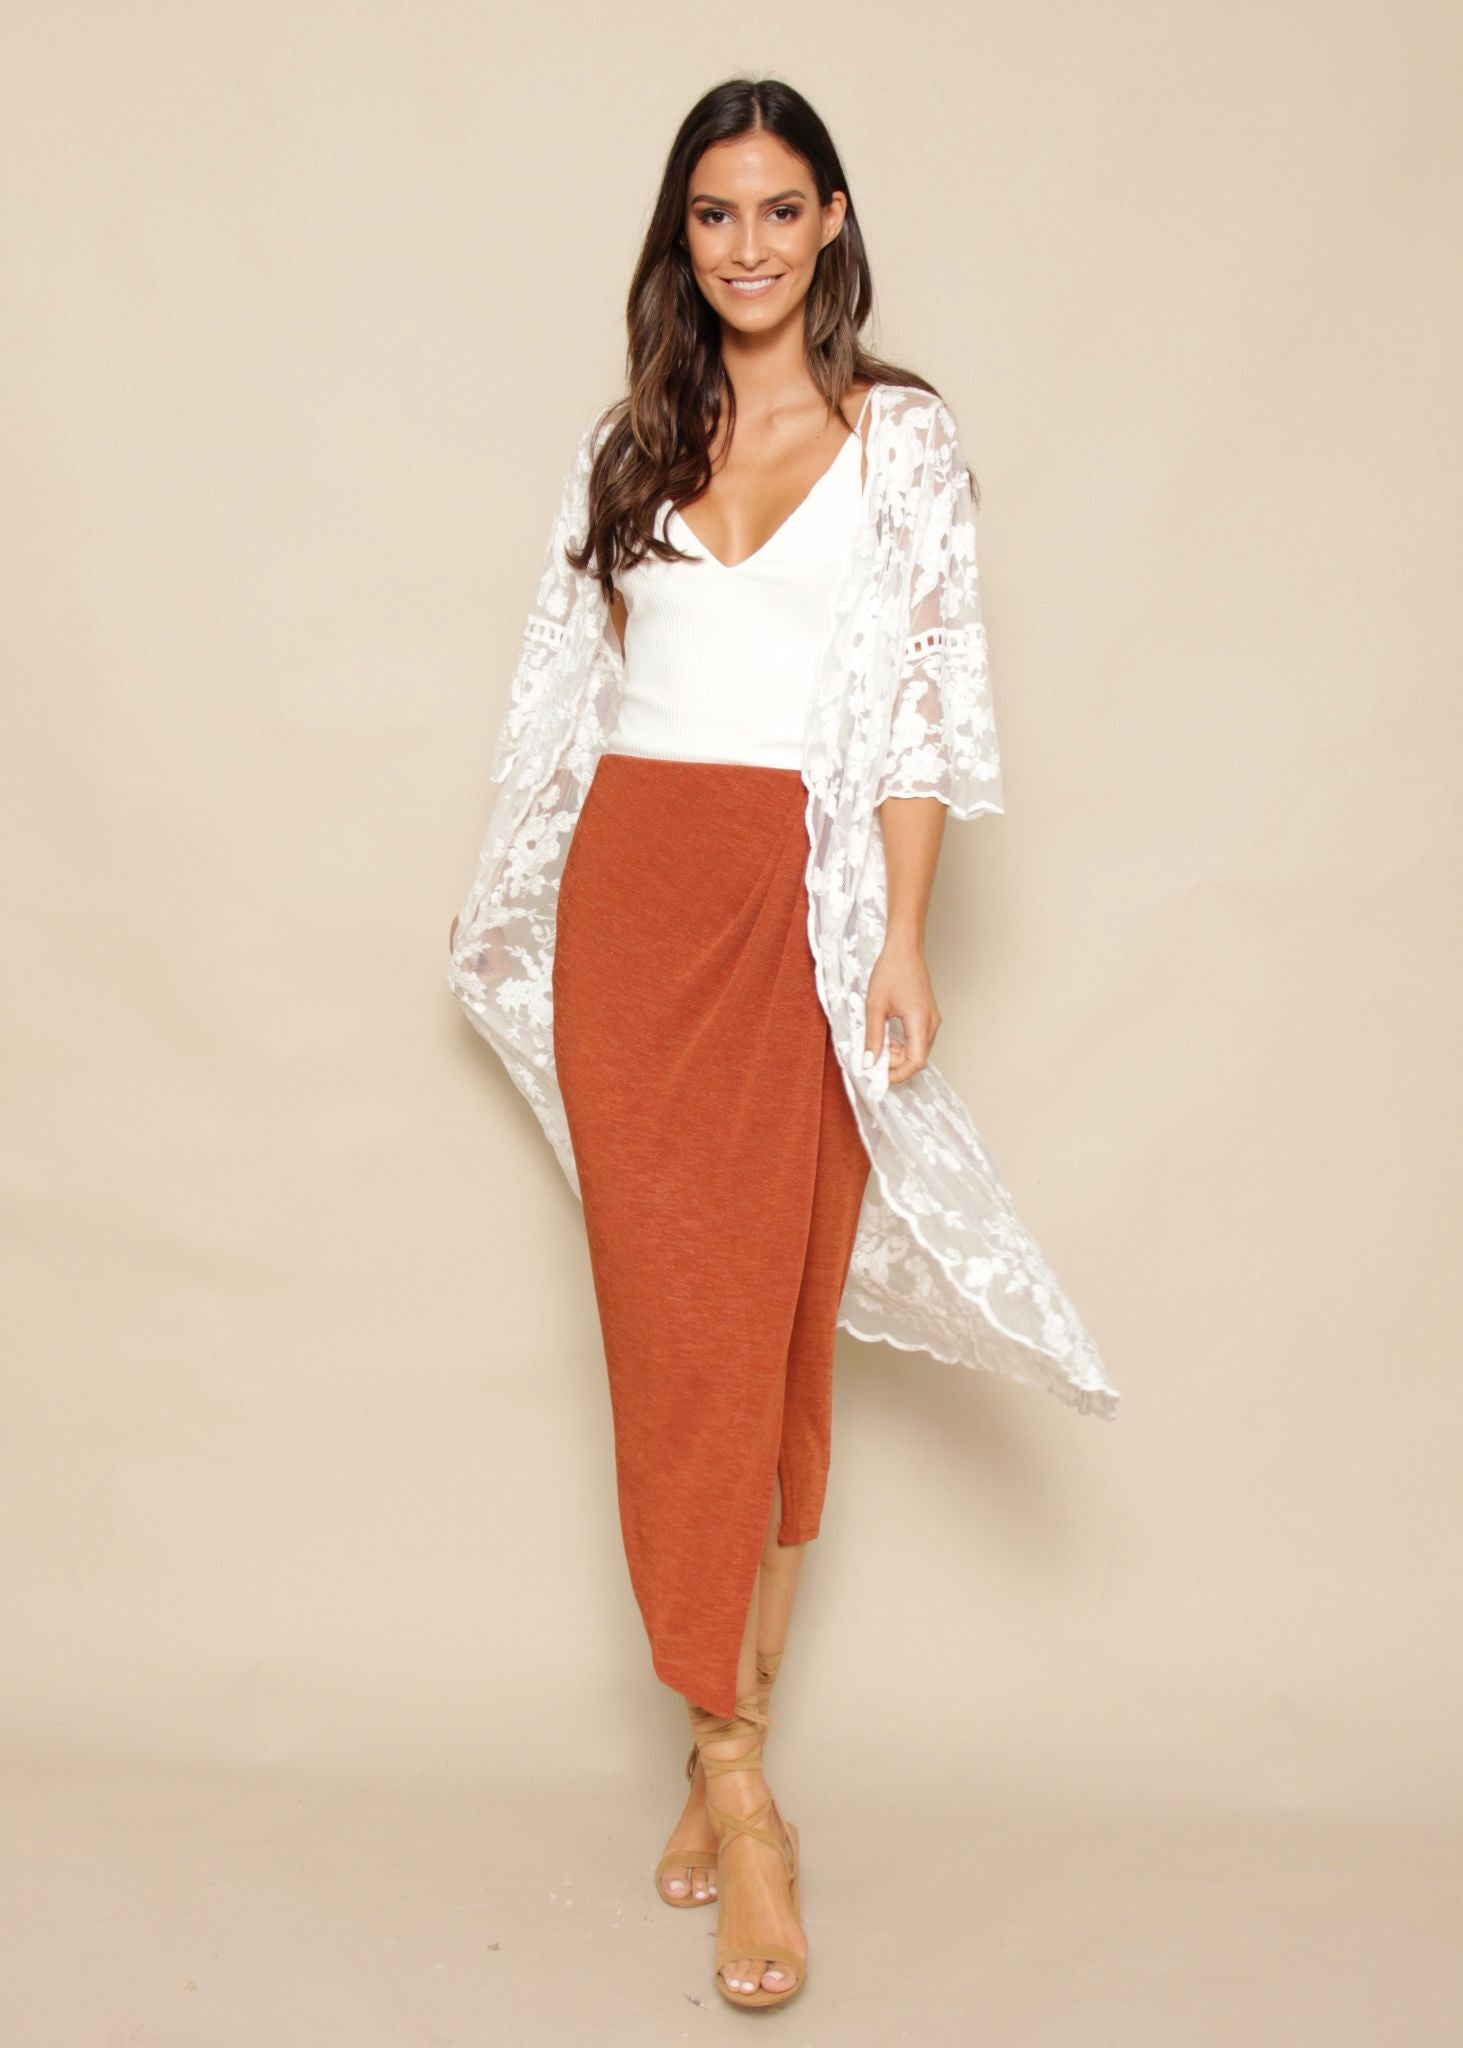 Poppy Fields Lace Cape - White